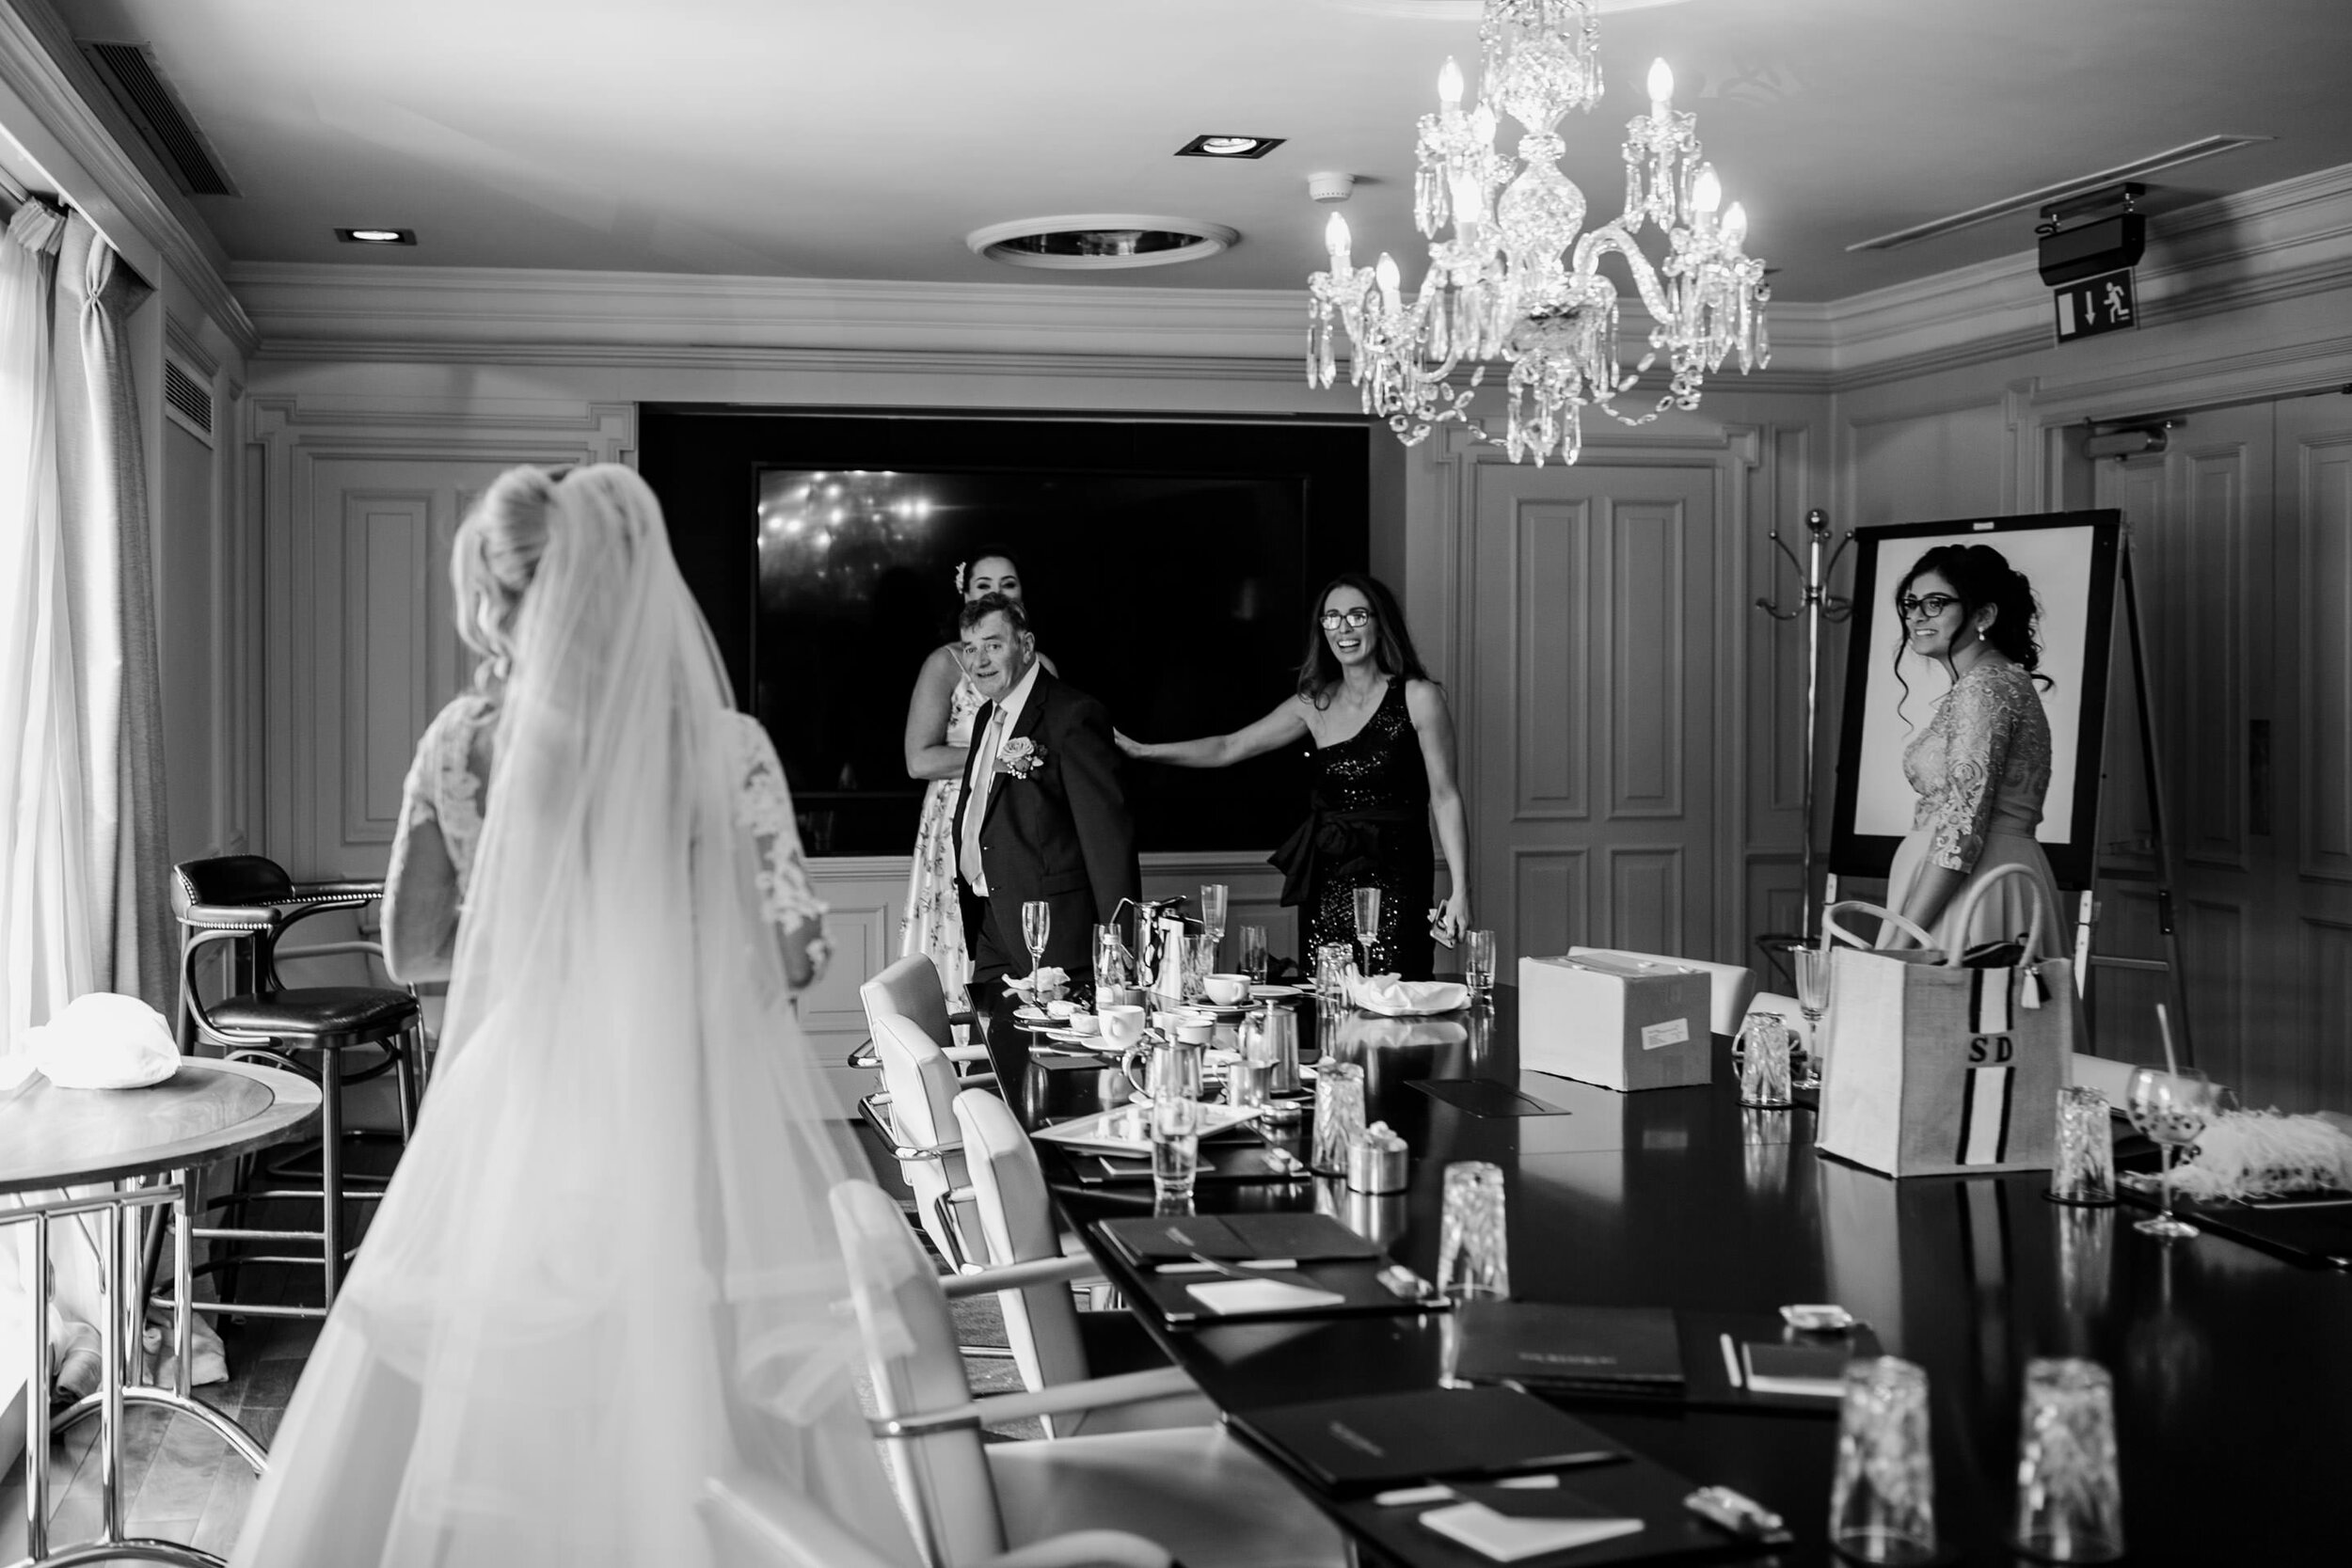 c&s_the_westbury_wedding_photographer_livia_figueiredo_8.jpg